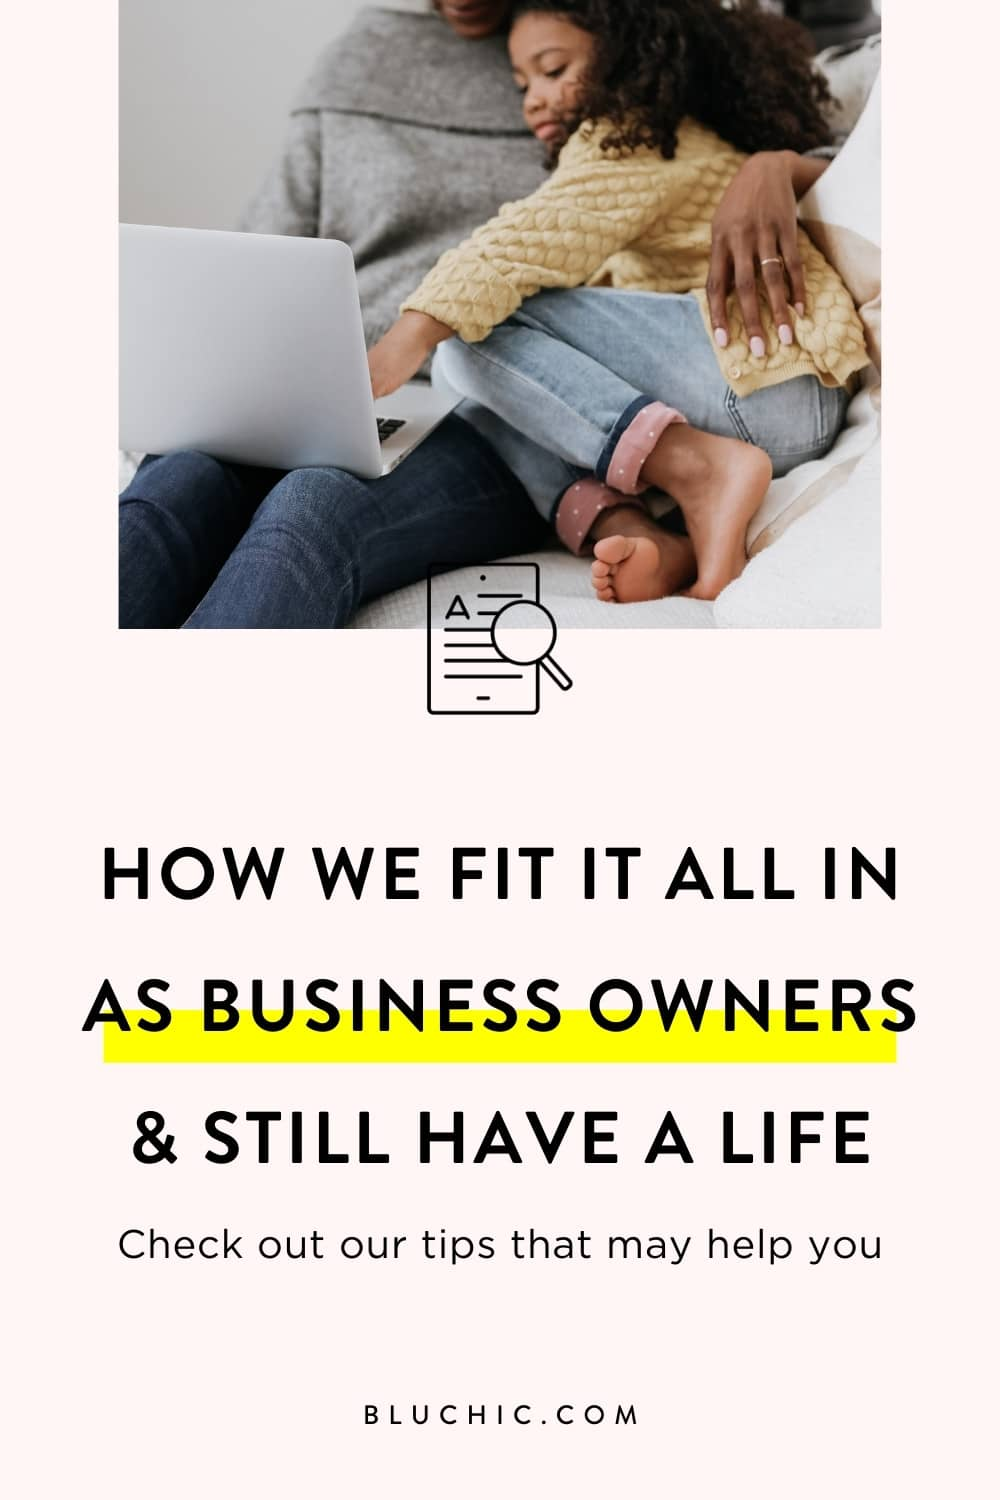 How We Fit It All In As Business Owners & Still Have A Life. Get our tips for productivity and time management that may help you as you continue to grow your own business.